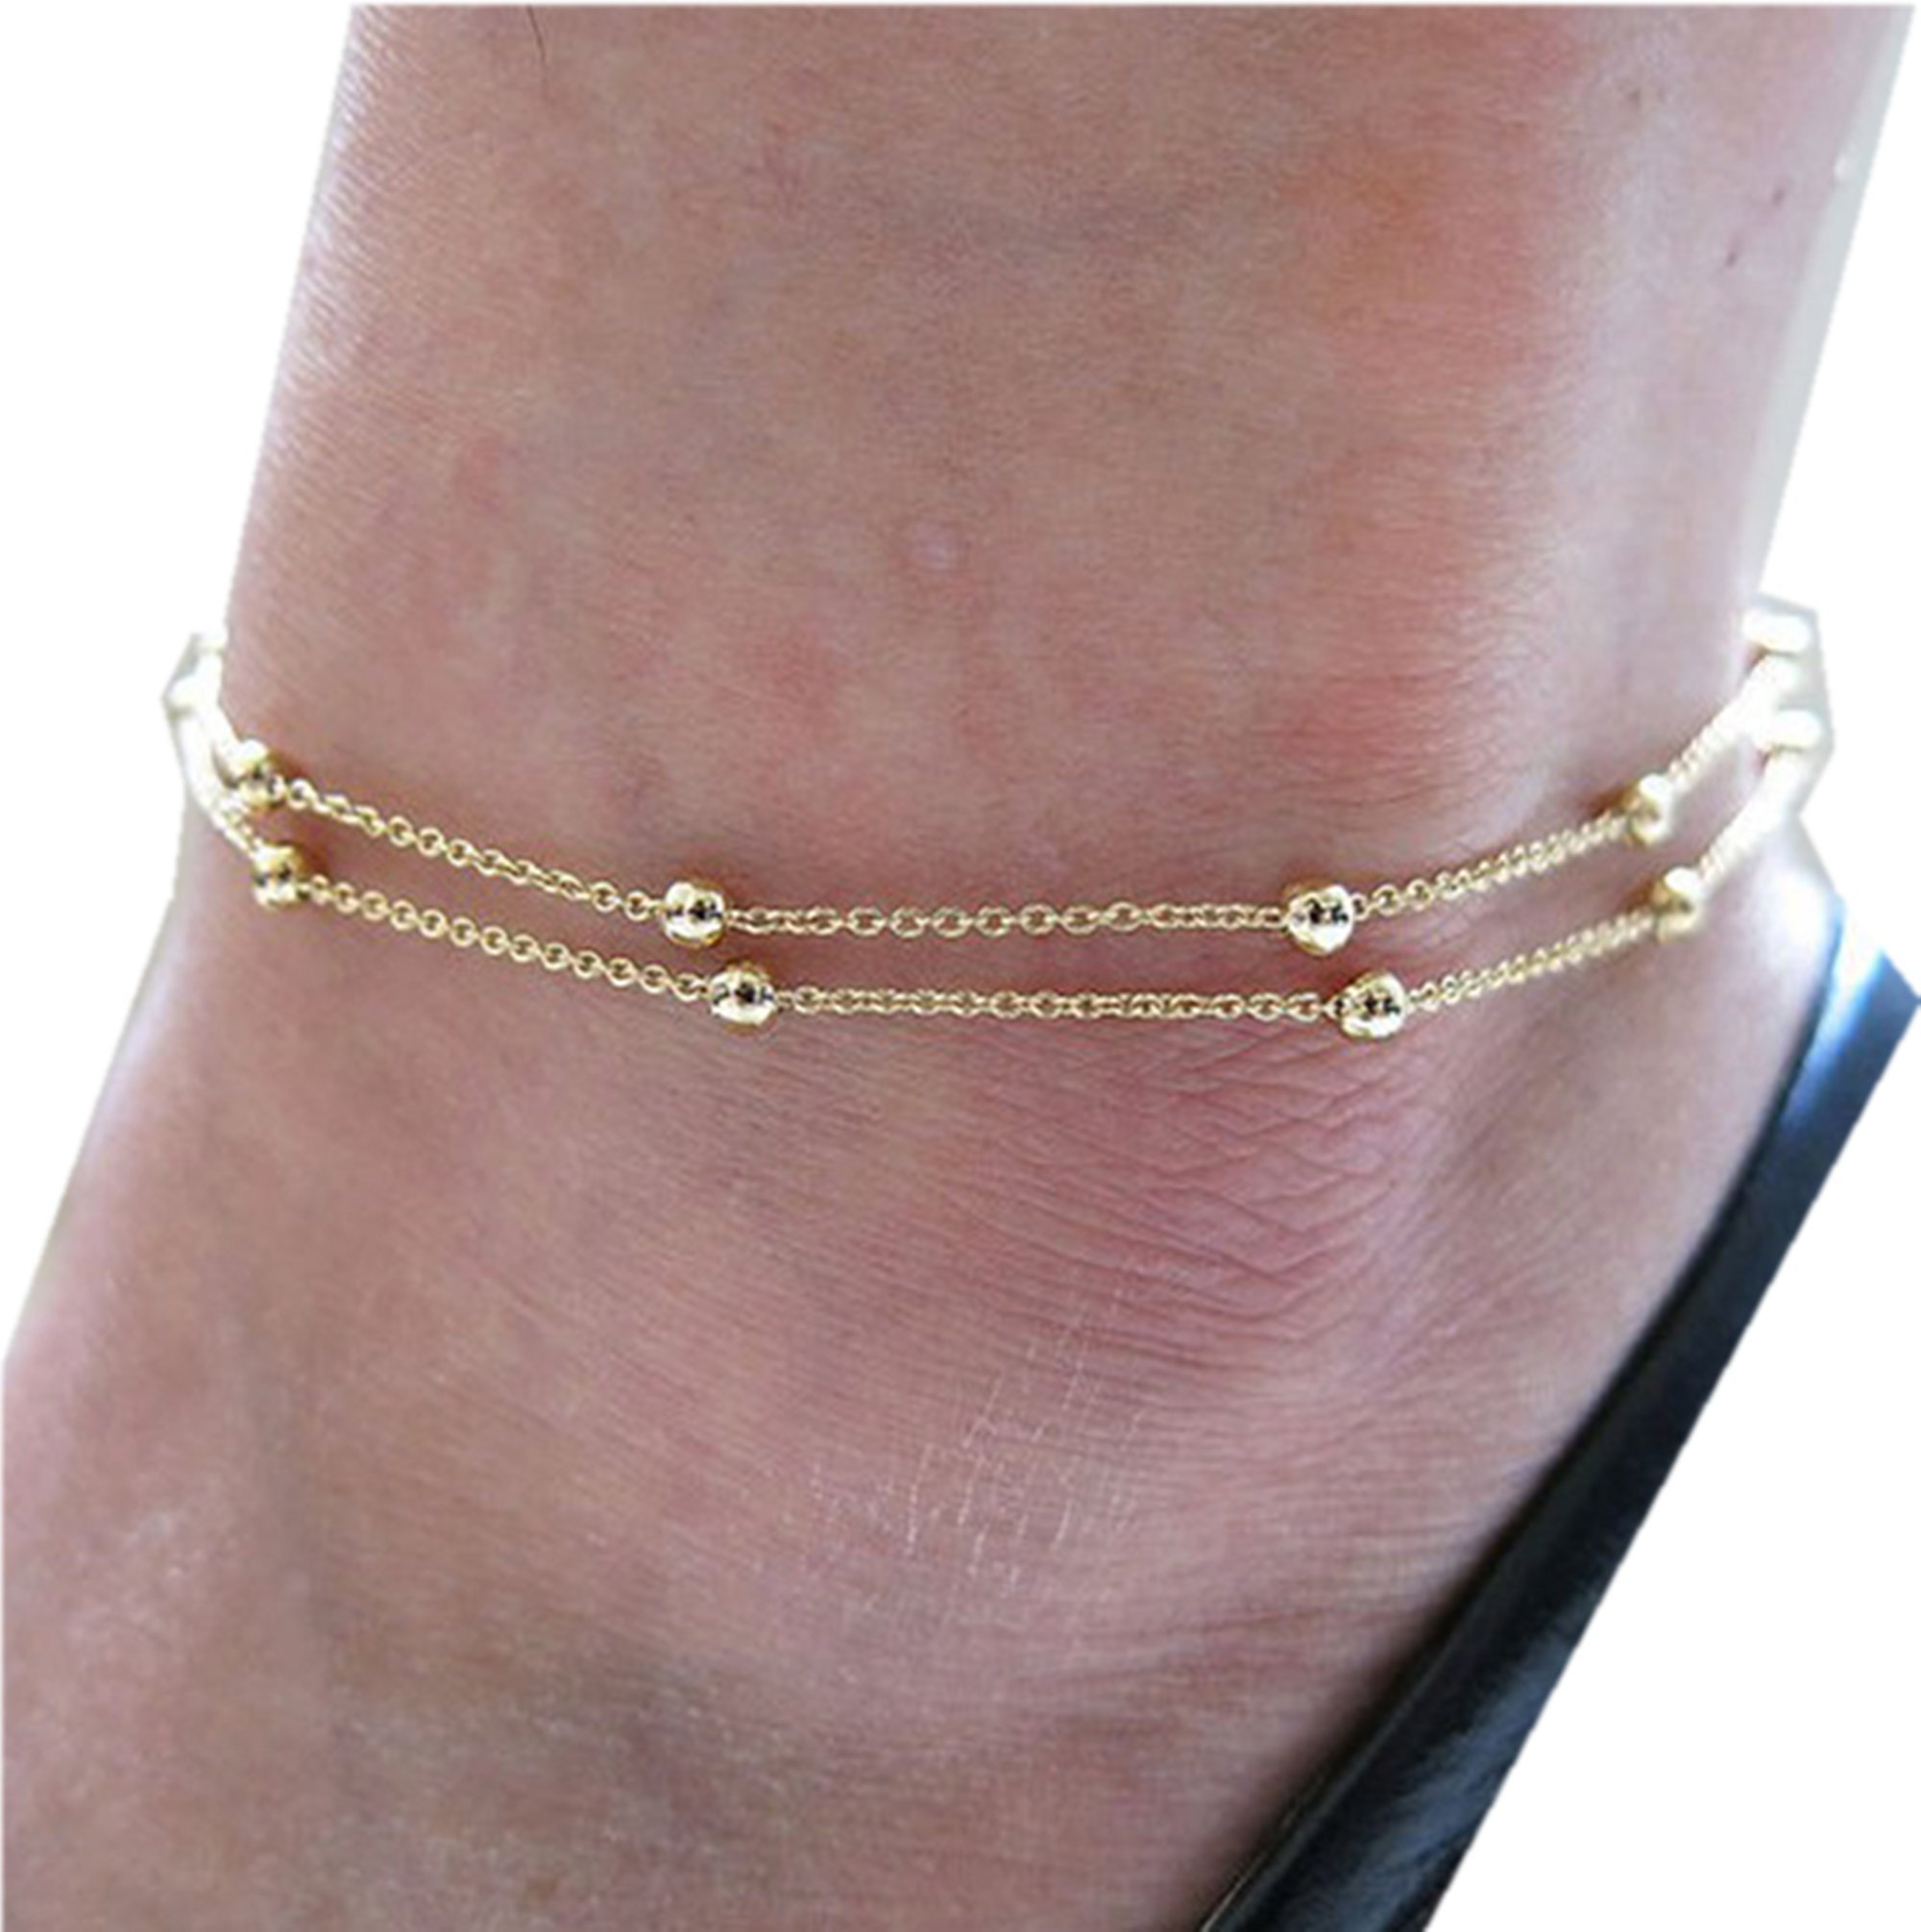 anklets jewelstop cut online silver fashion anklet shiny diamond tri jewelry rose ankle color watches prices offers fancy bracelet rhodium weave compare find and